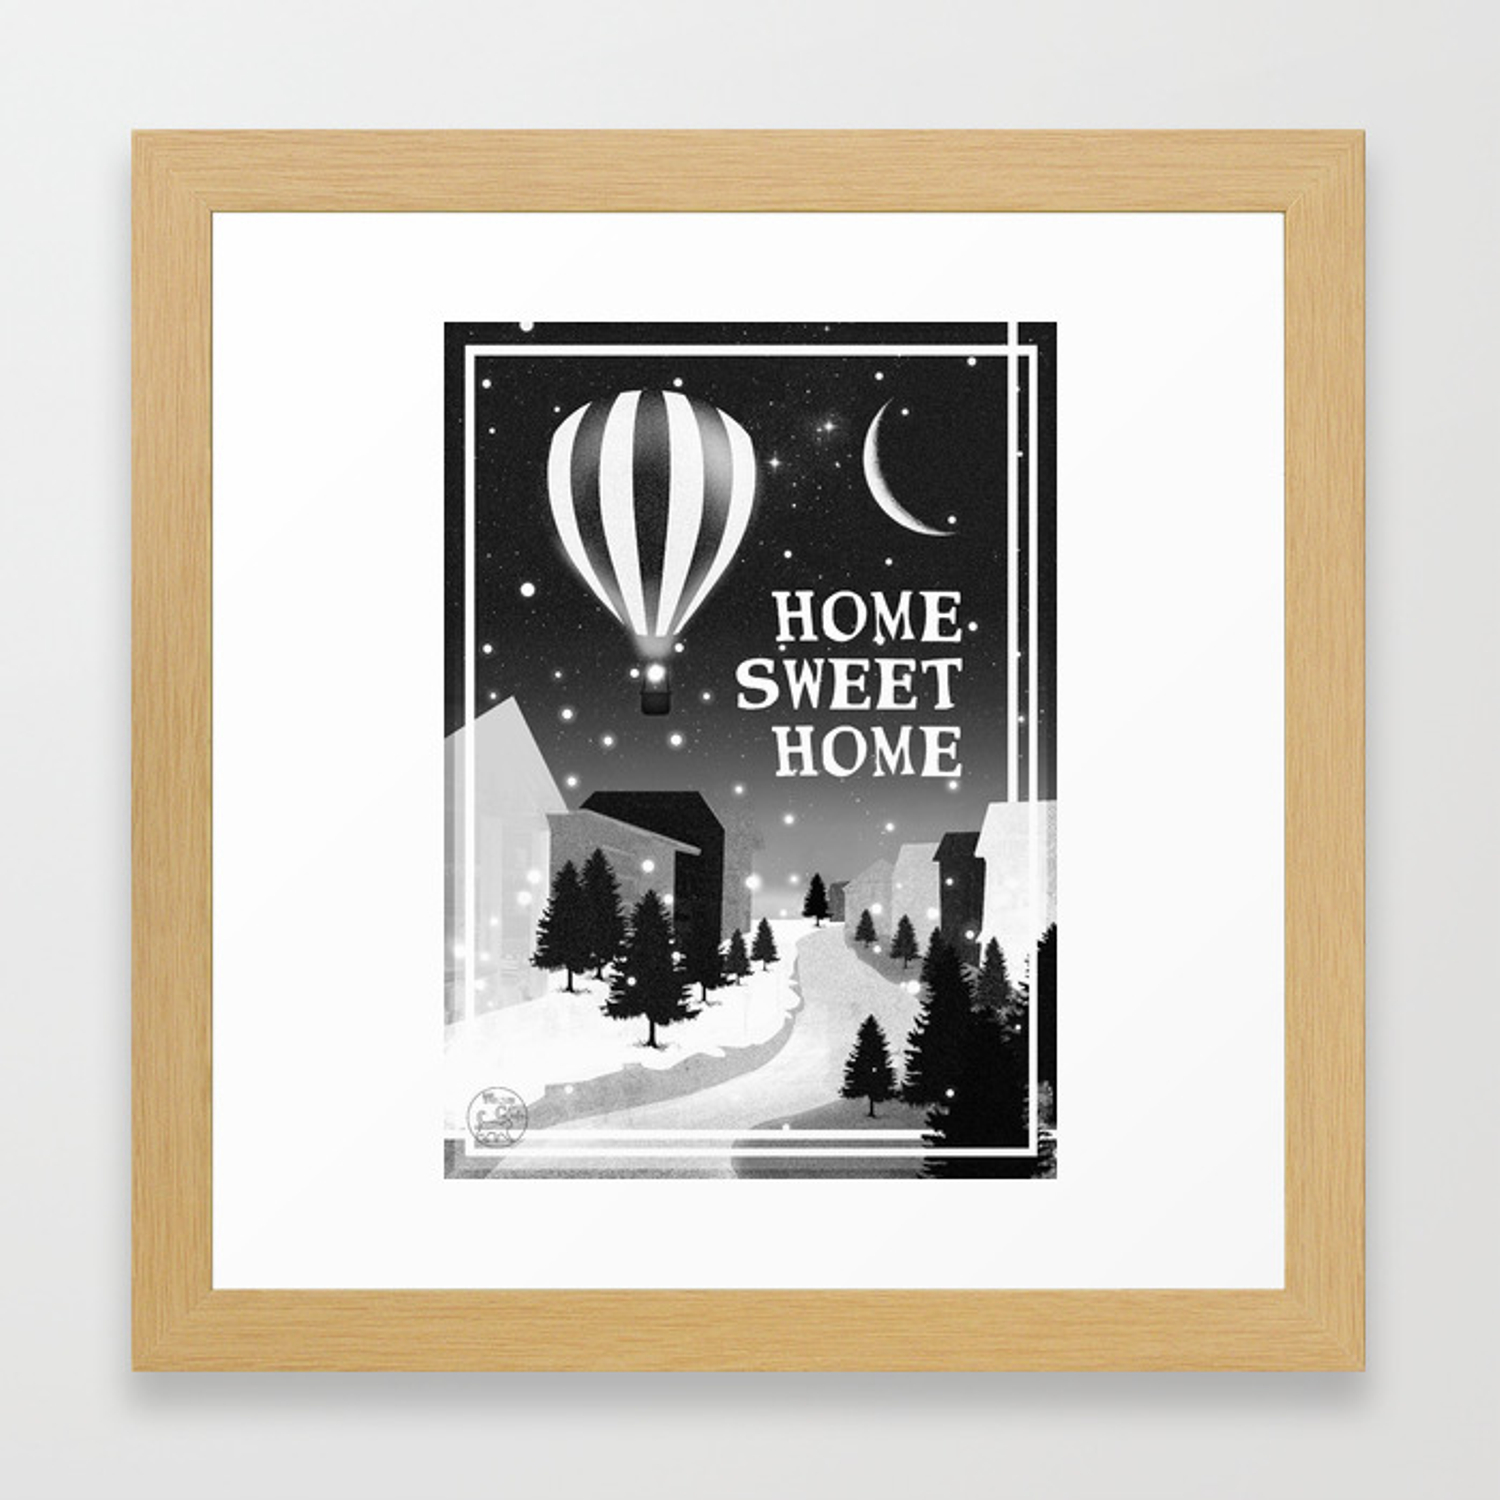 Hot Air Balloon Home Sweet Snowy Little Town Night Staroon Decor Christmas Spirit Framed Art Print